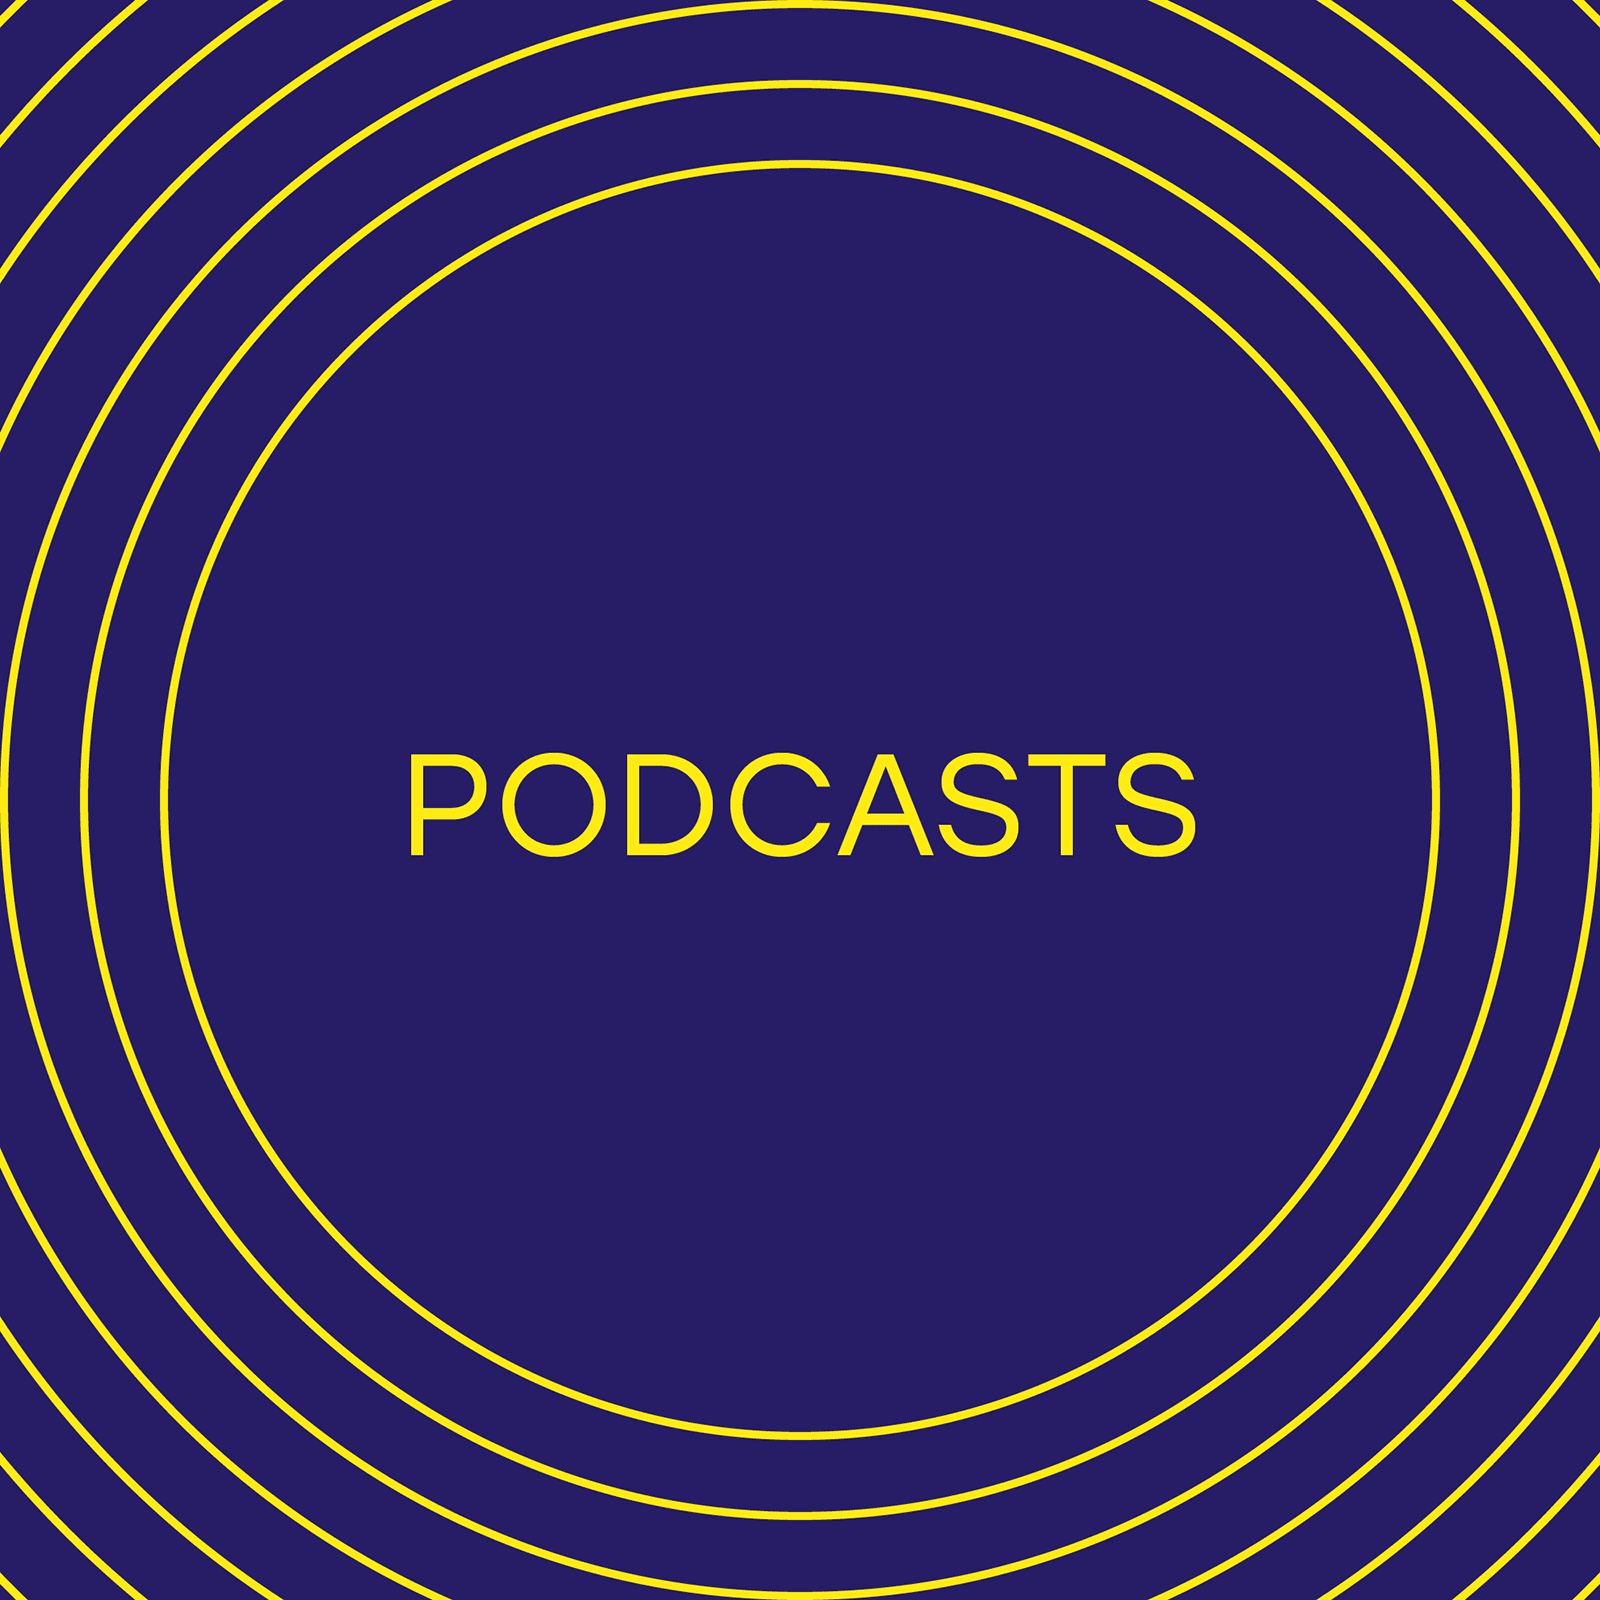 icon-services-podcasts